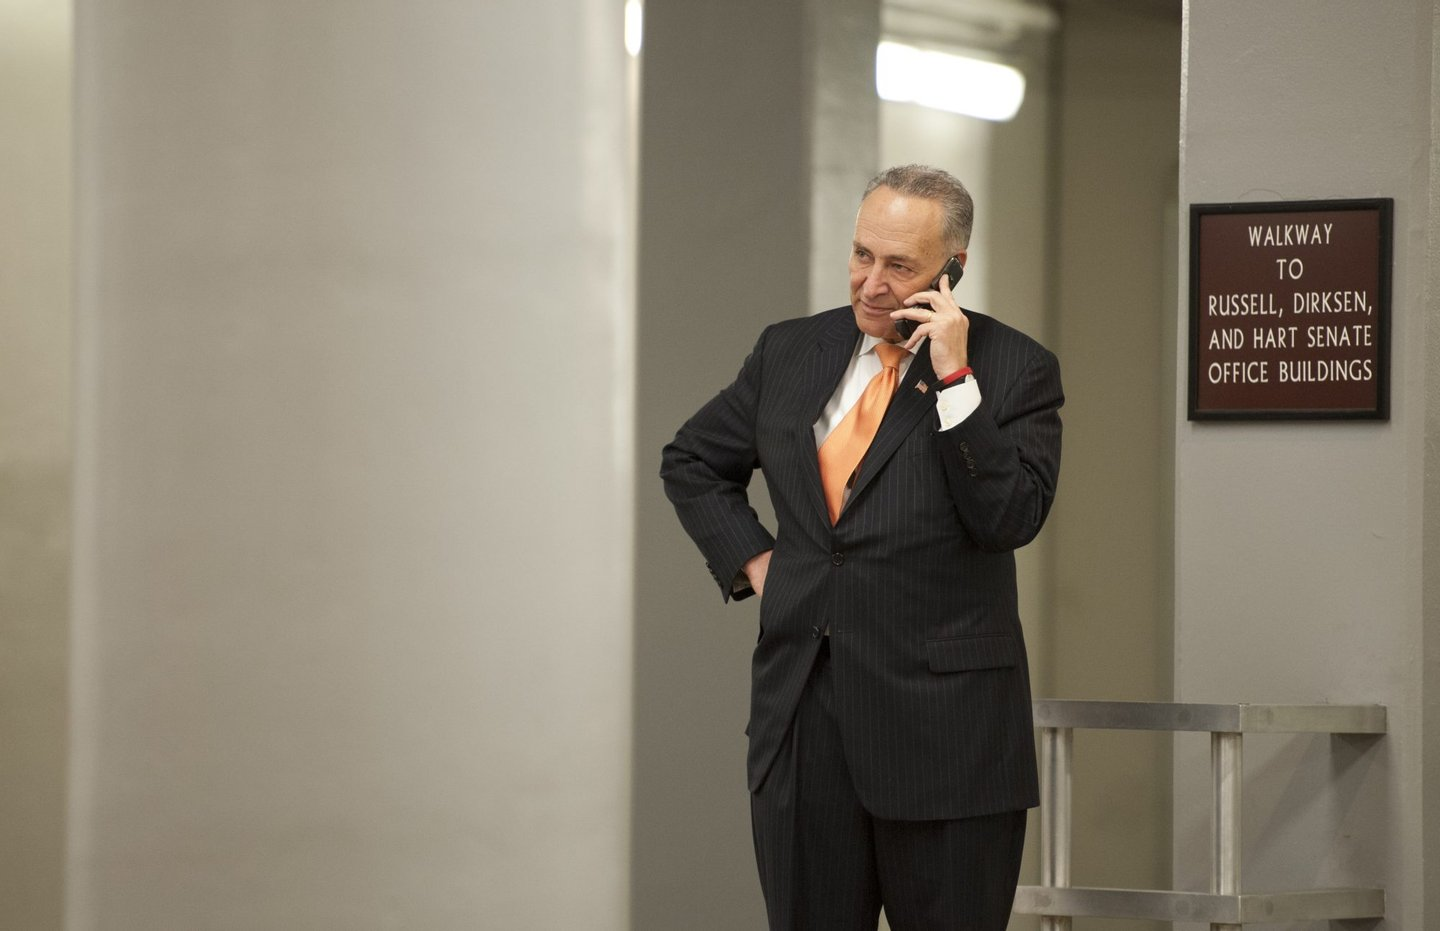 UNITED STATES - : Sen. Charles Schumer, D-NY., makes a call in the Senate subway of the U.S. Capitol on May 7, 2013. (Photo By Douglas Graham/CQ Roll Call)